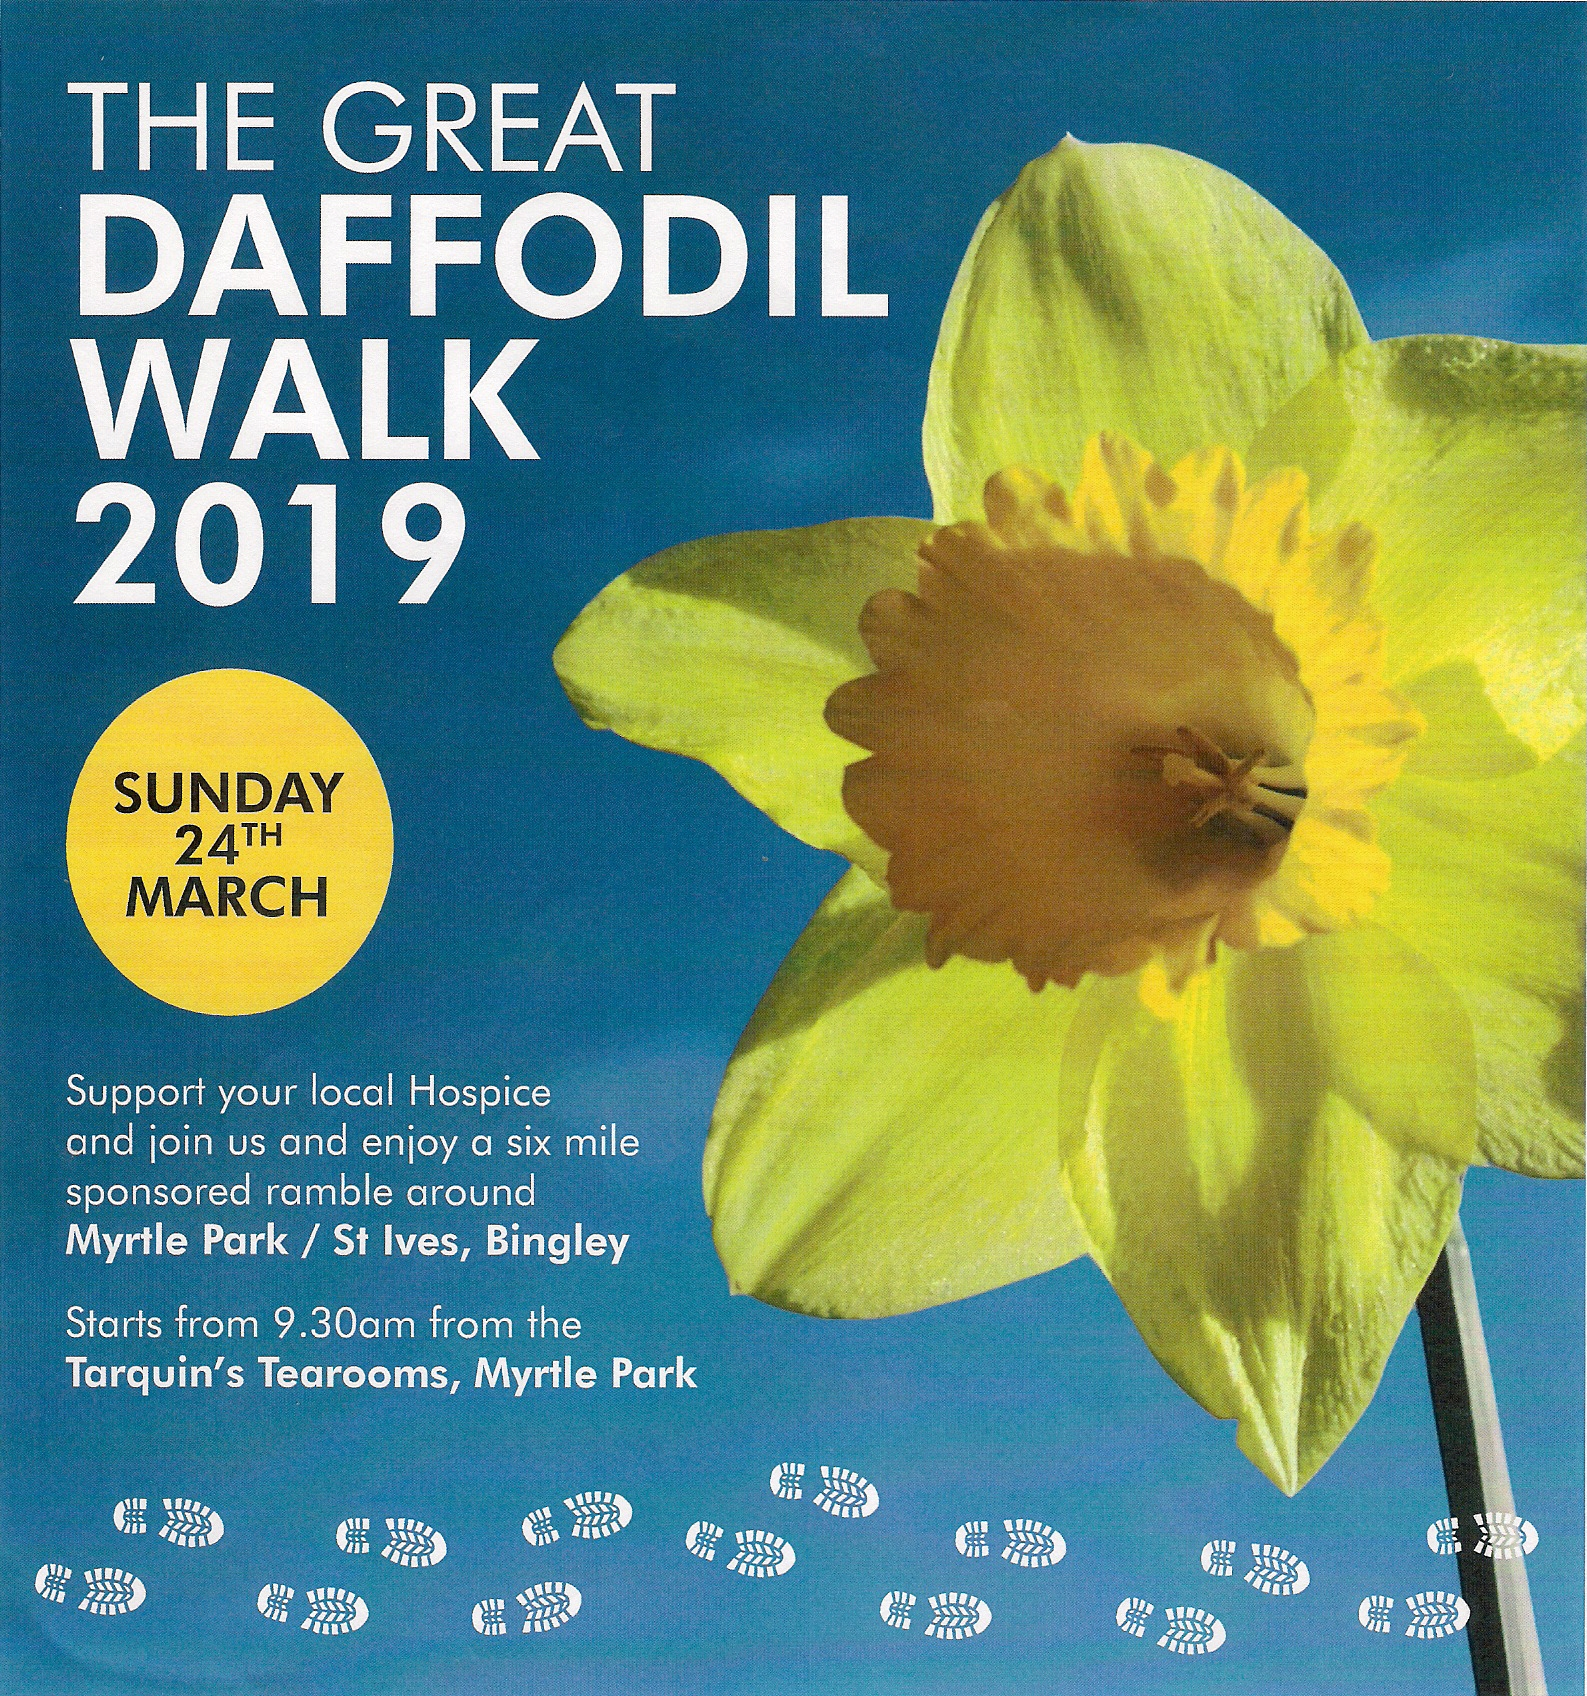 Great Daffodil Walk 2019